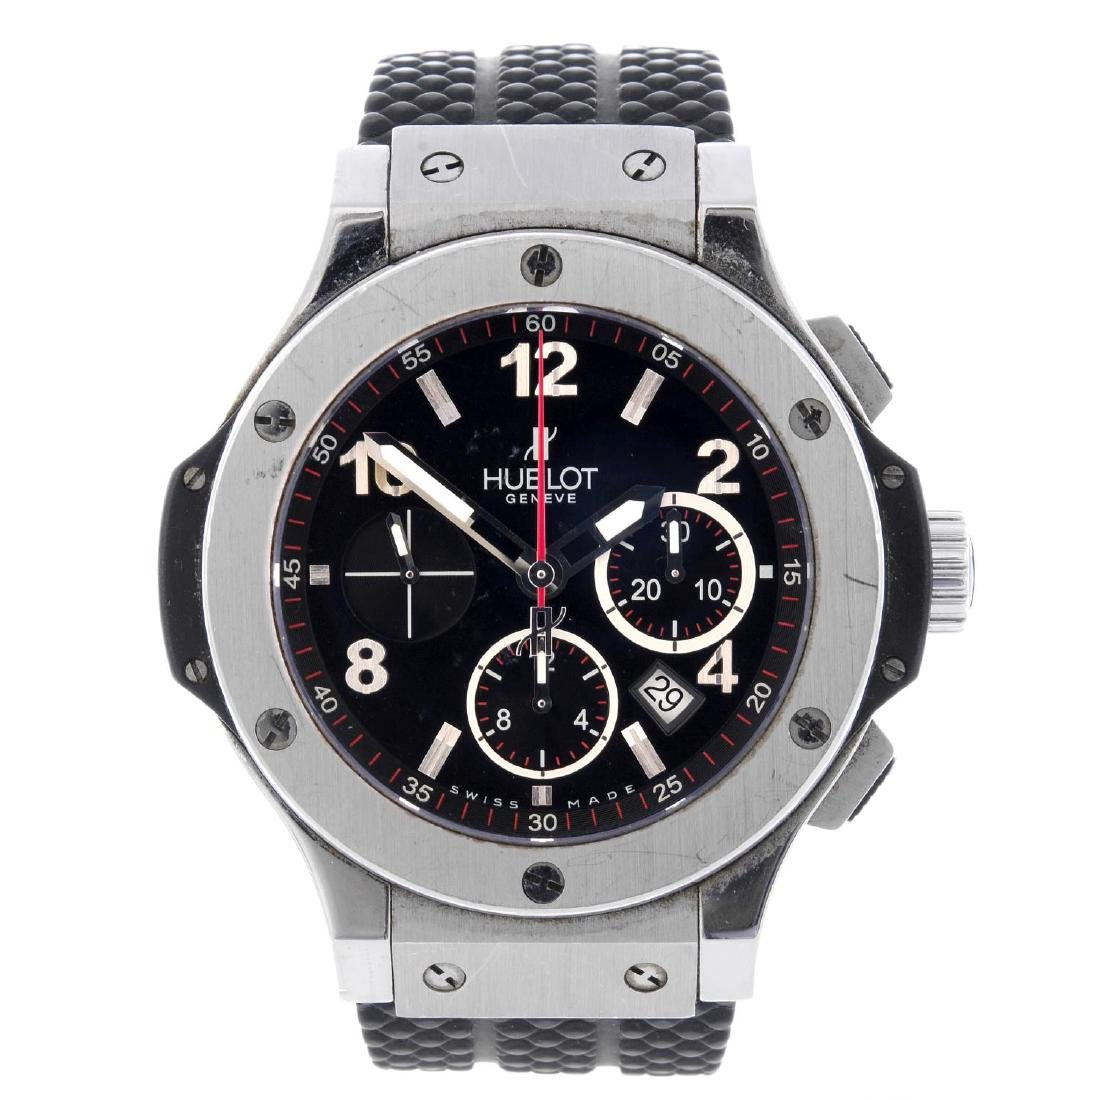 HUBLOT - a gentleman's Big Bang chronograph wrist